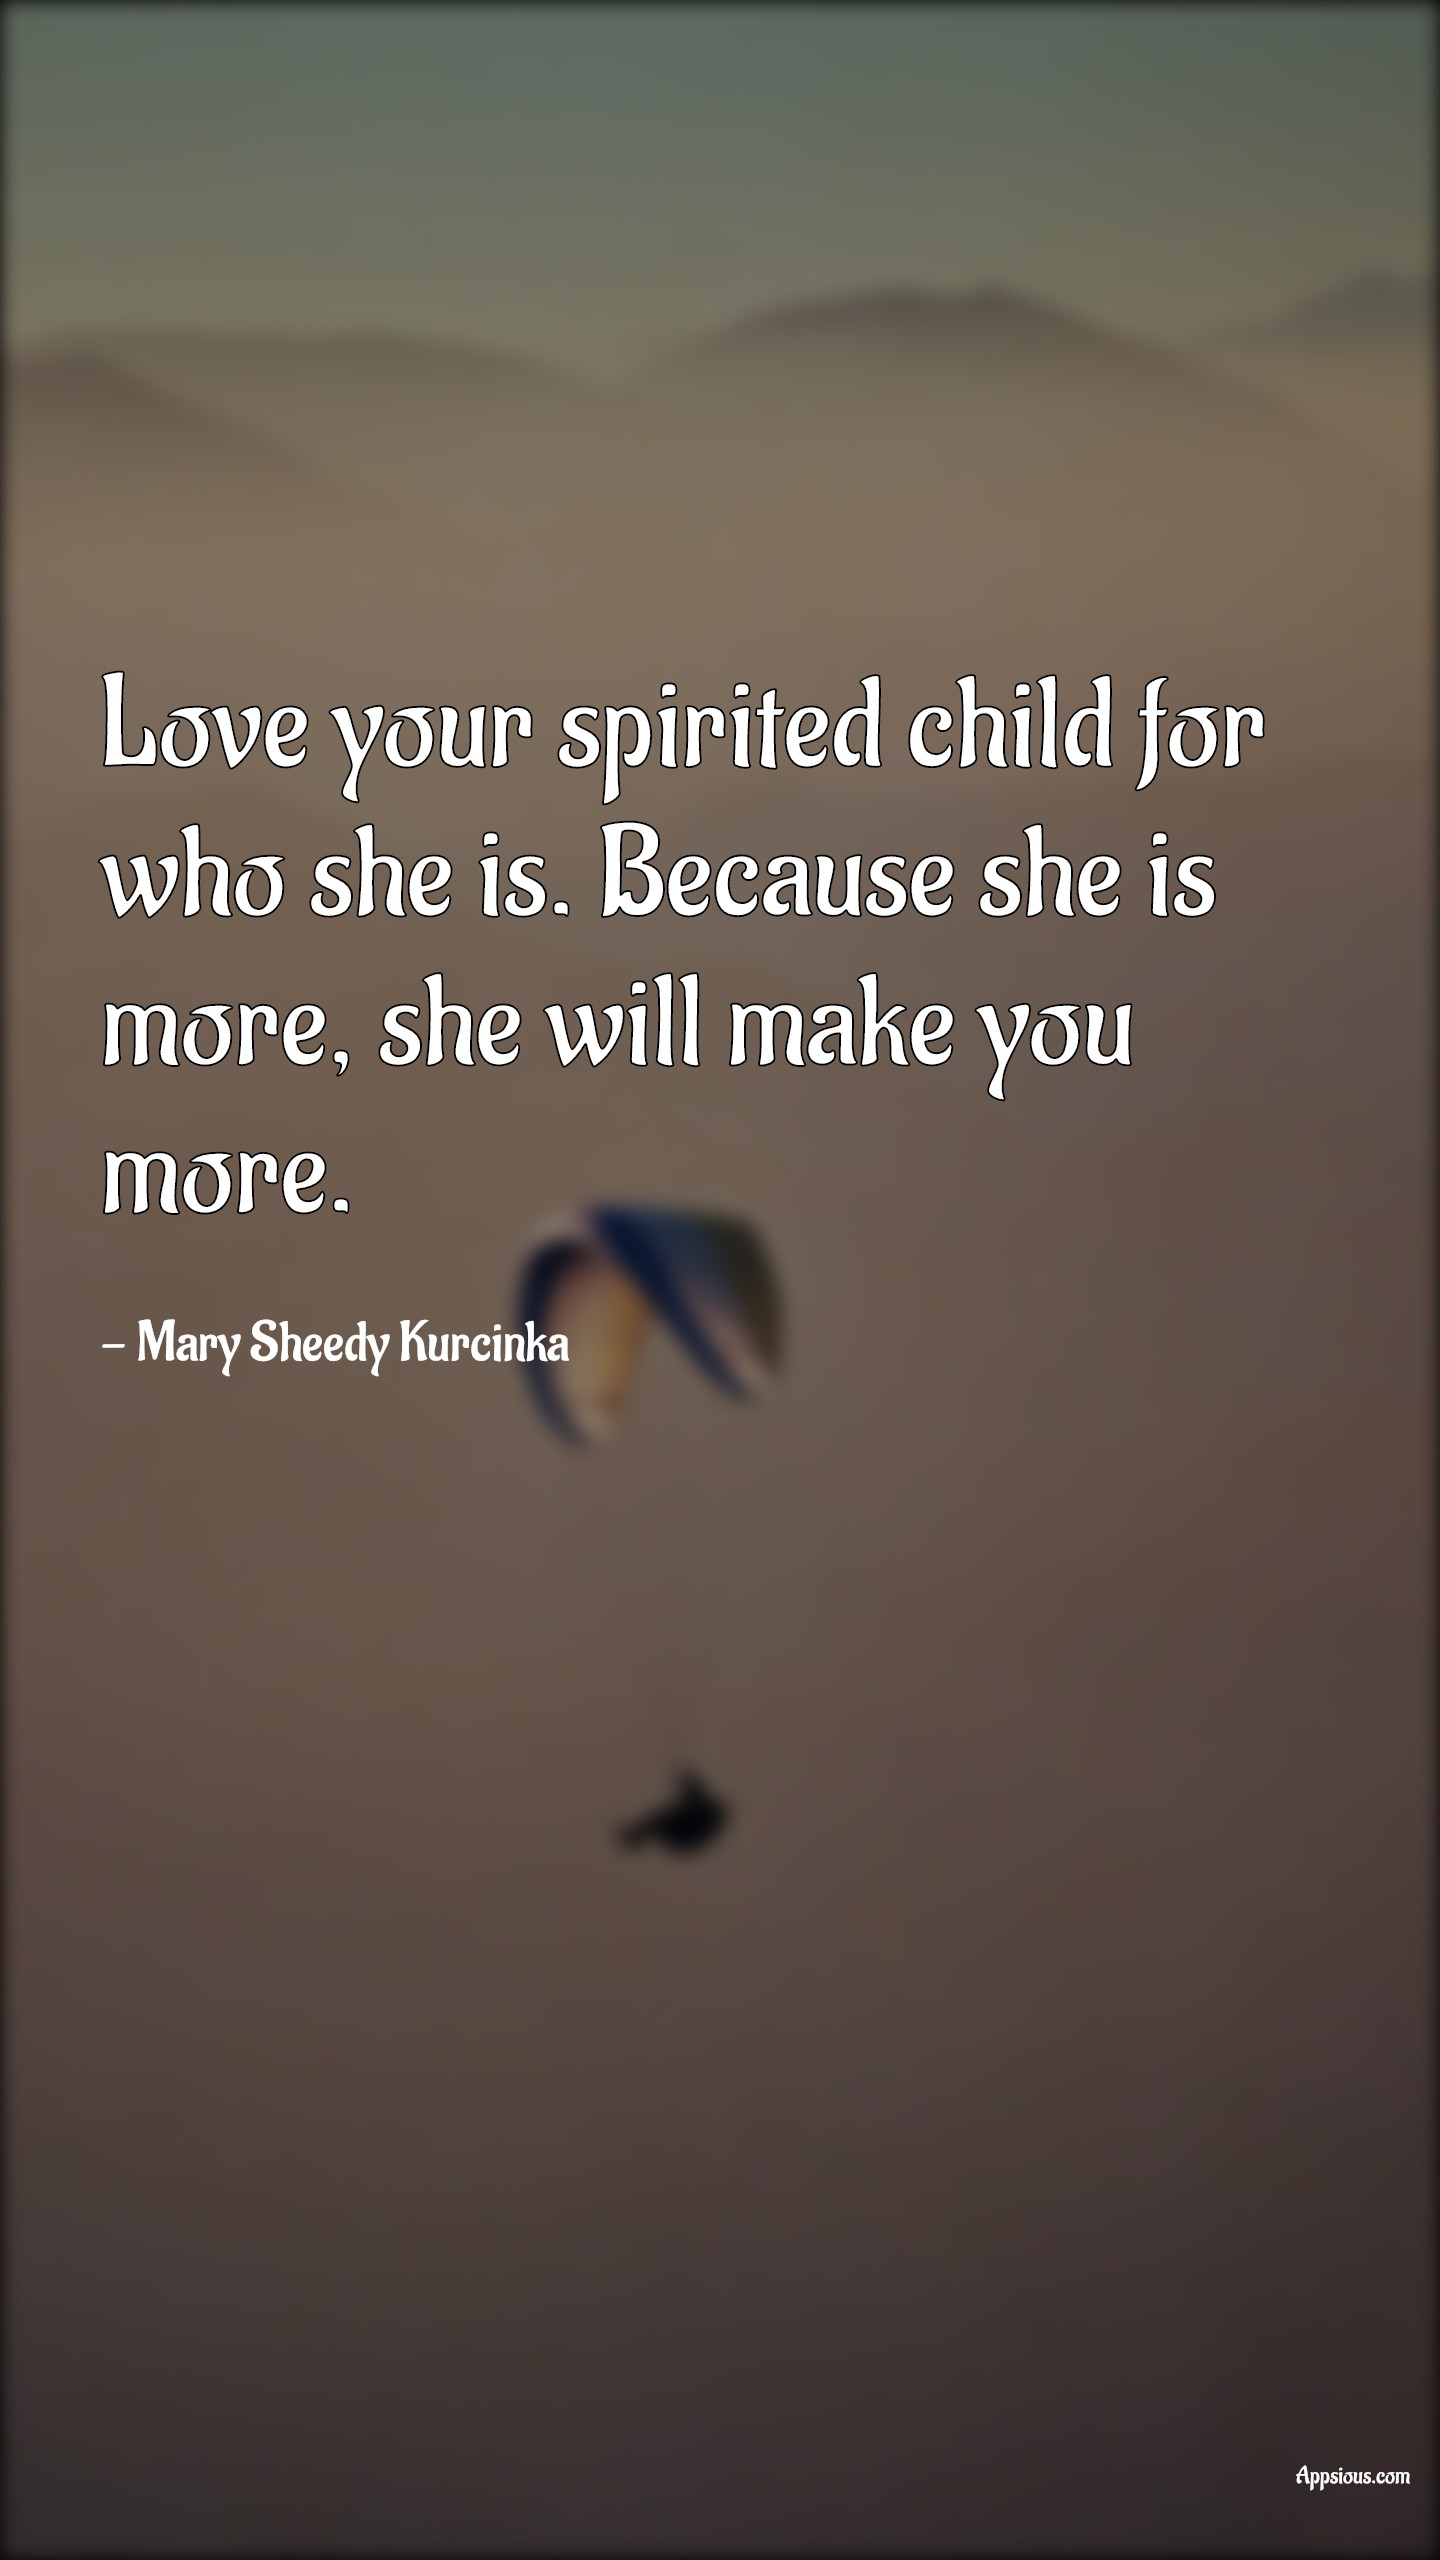 Love your spirited child for who she is. Because she is more, she will make you more.